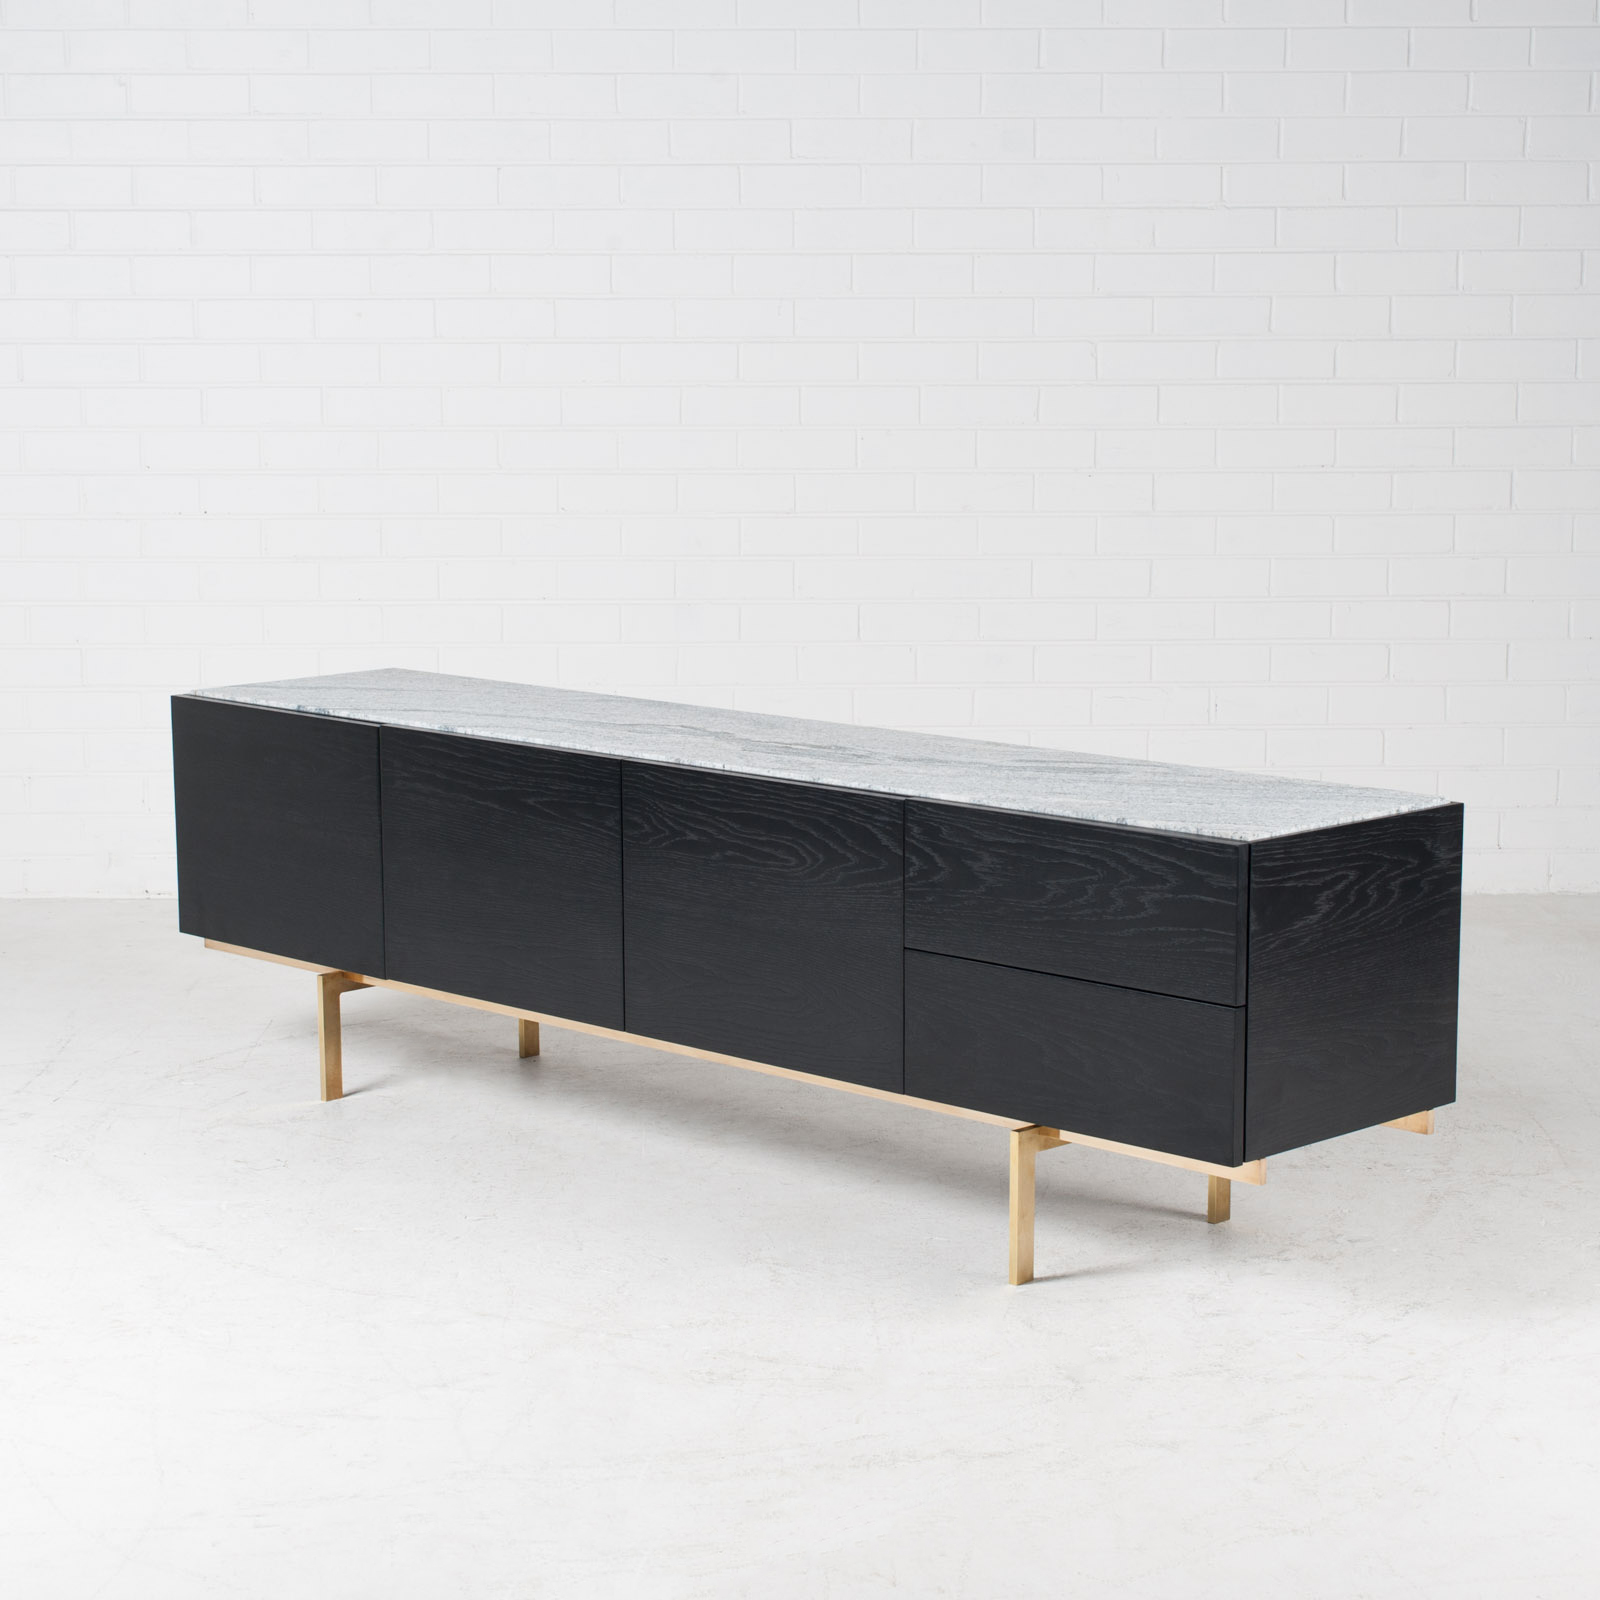 Shoreline Sideboard By Mt Studio For Modern Times 2018 Australia 05